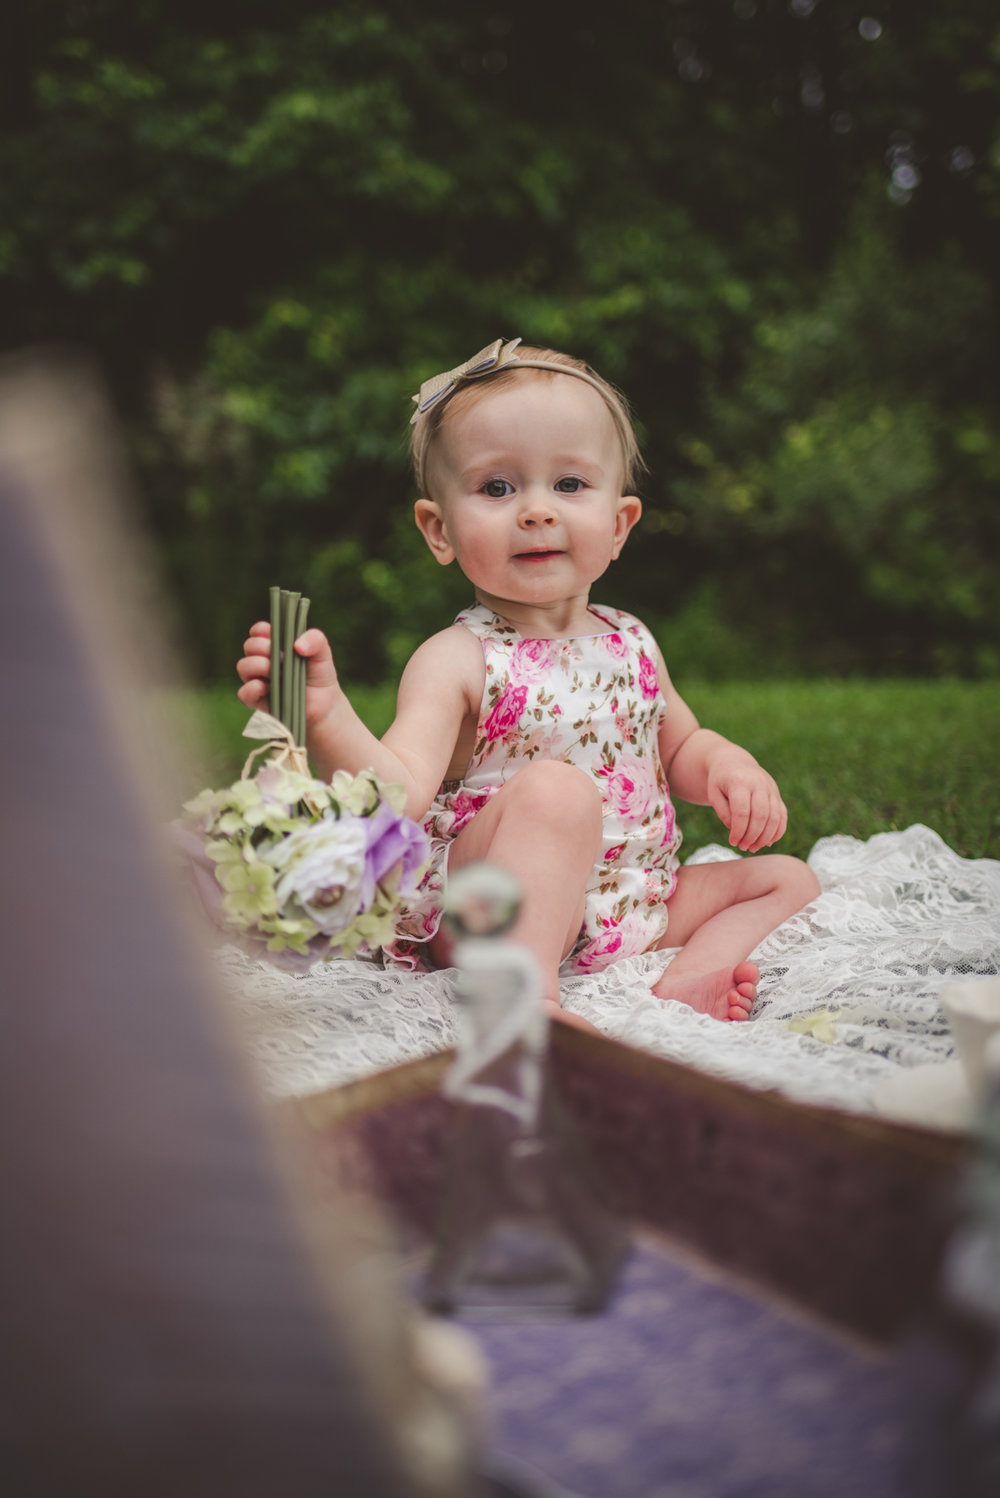 This little one year old girl is sitting with vintage props from her parents wedding in Rolesville, North Carolina, image taken by Rose Trail Images.